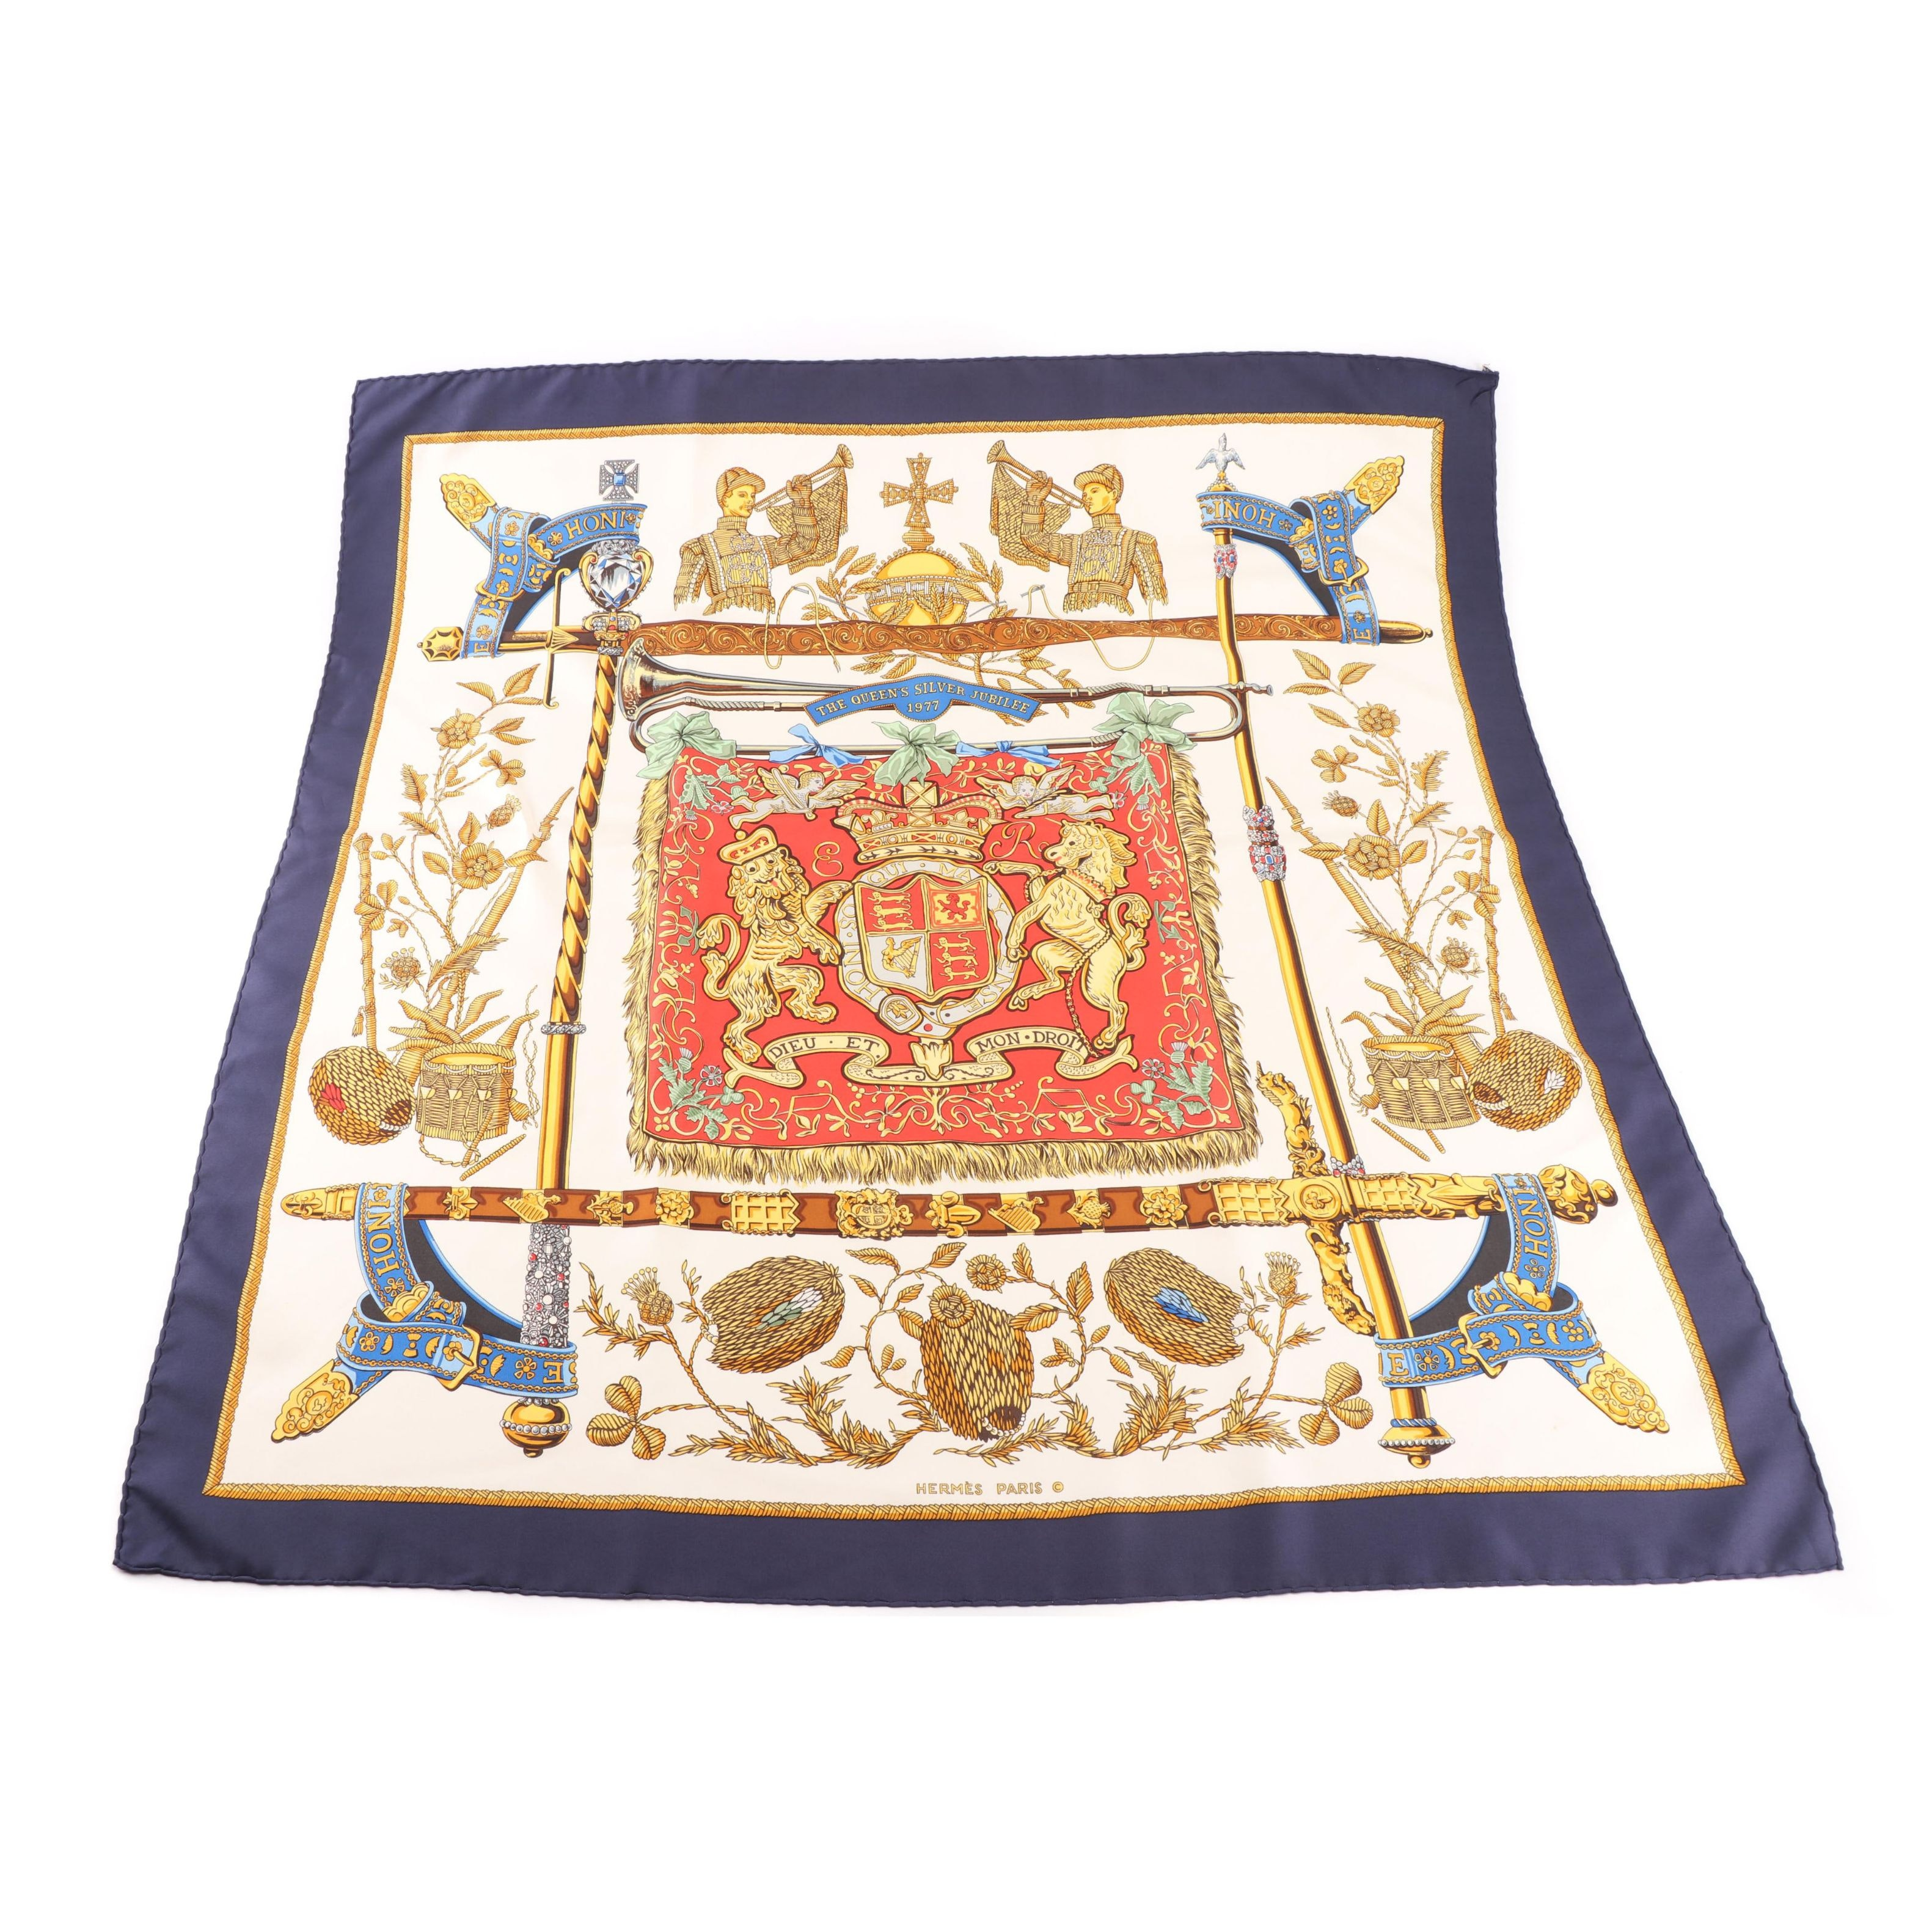 "Hermès of Paris ""The Queen's Silver Jubilee 1977/Dieu et Mon Droit"" Silk Scarf"